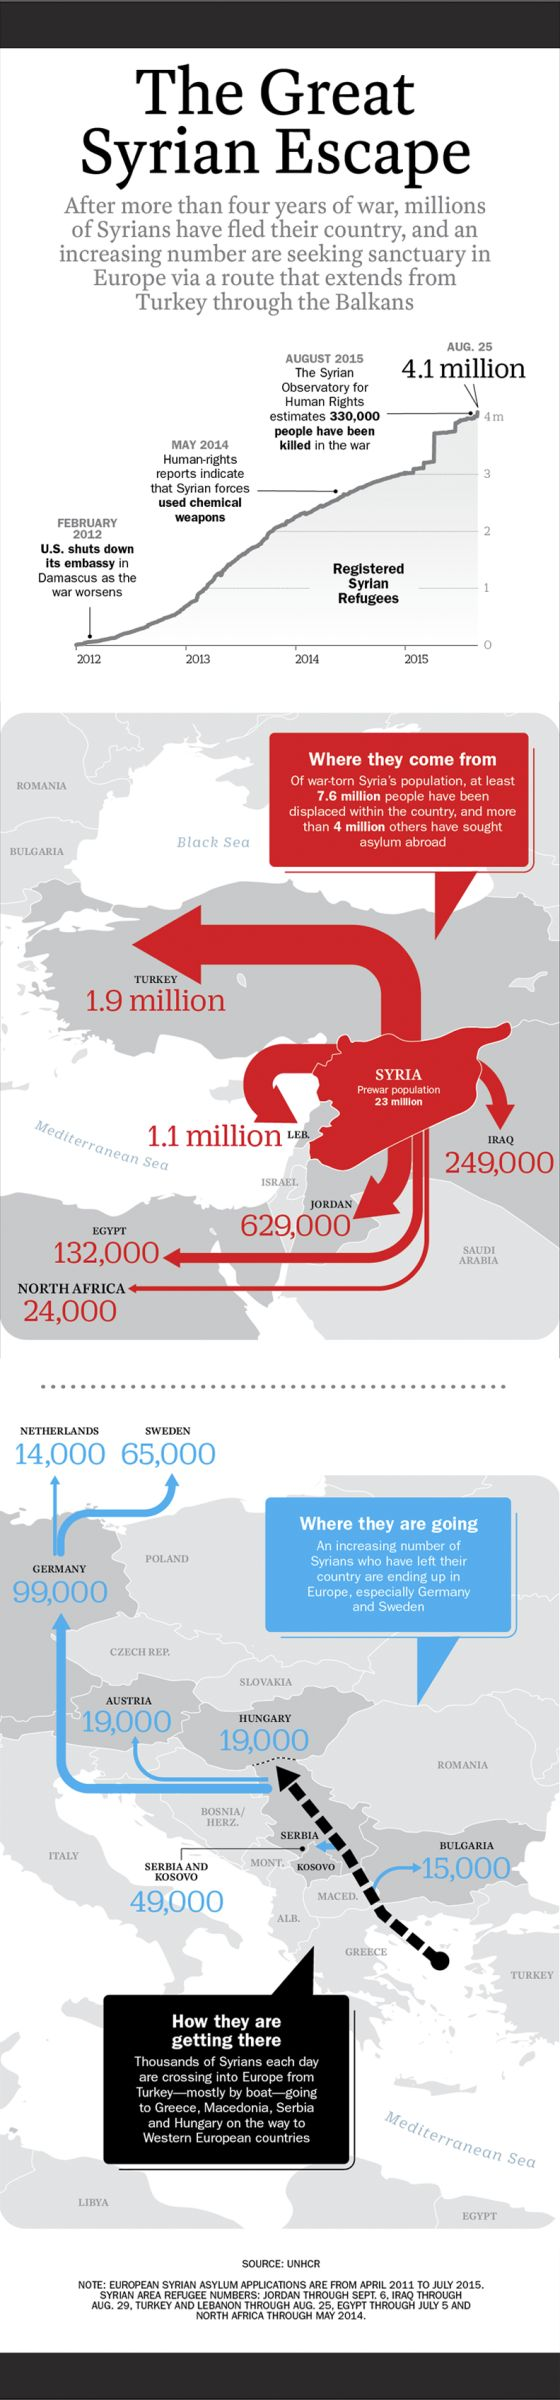 This map shows how many Syrian refugees have entered into surrounding countries. It is estimated that a total of 4.1 million people have died in the civil war in Syria. Almost 2 million people have fled to Turkey in search of safety.